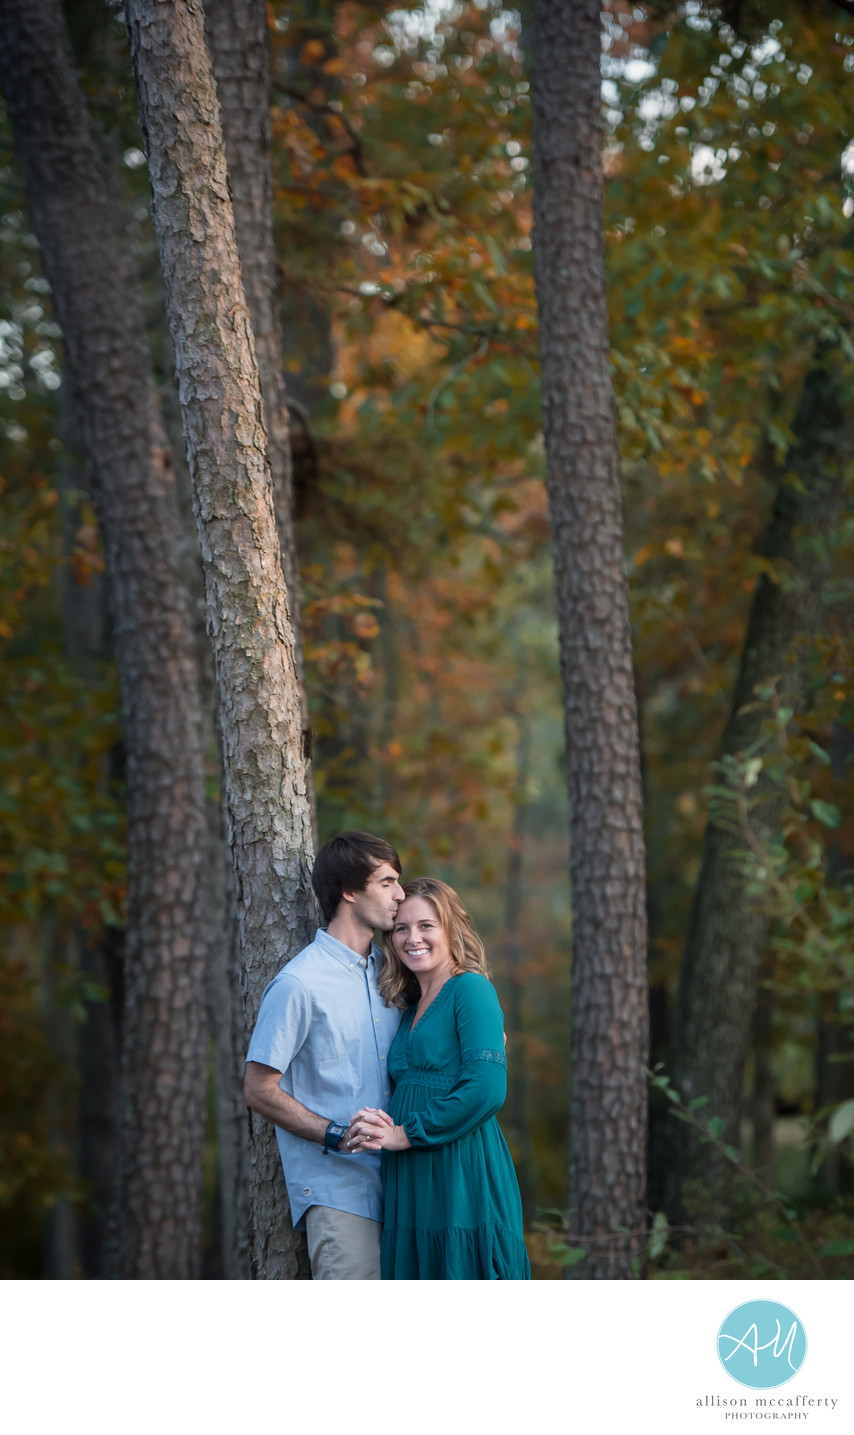 Fun Engagement Photographers South jersey